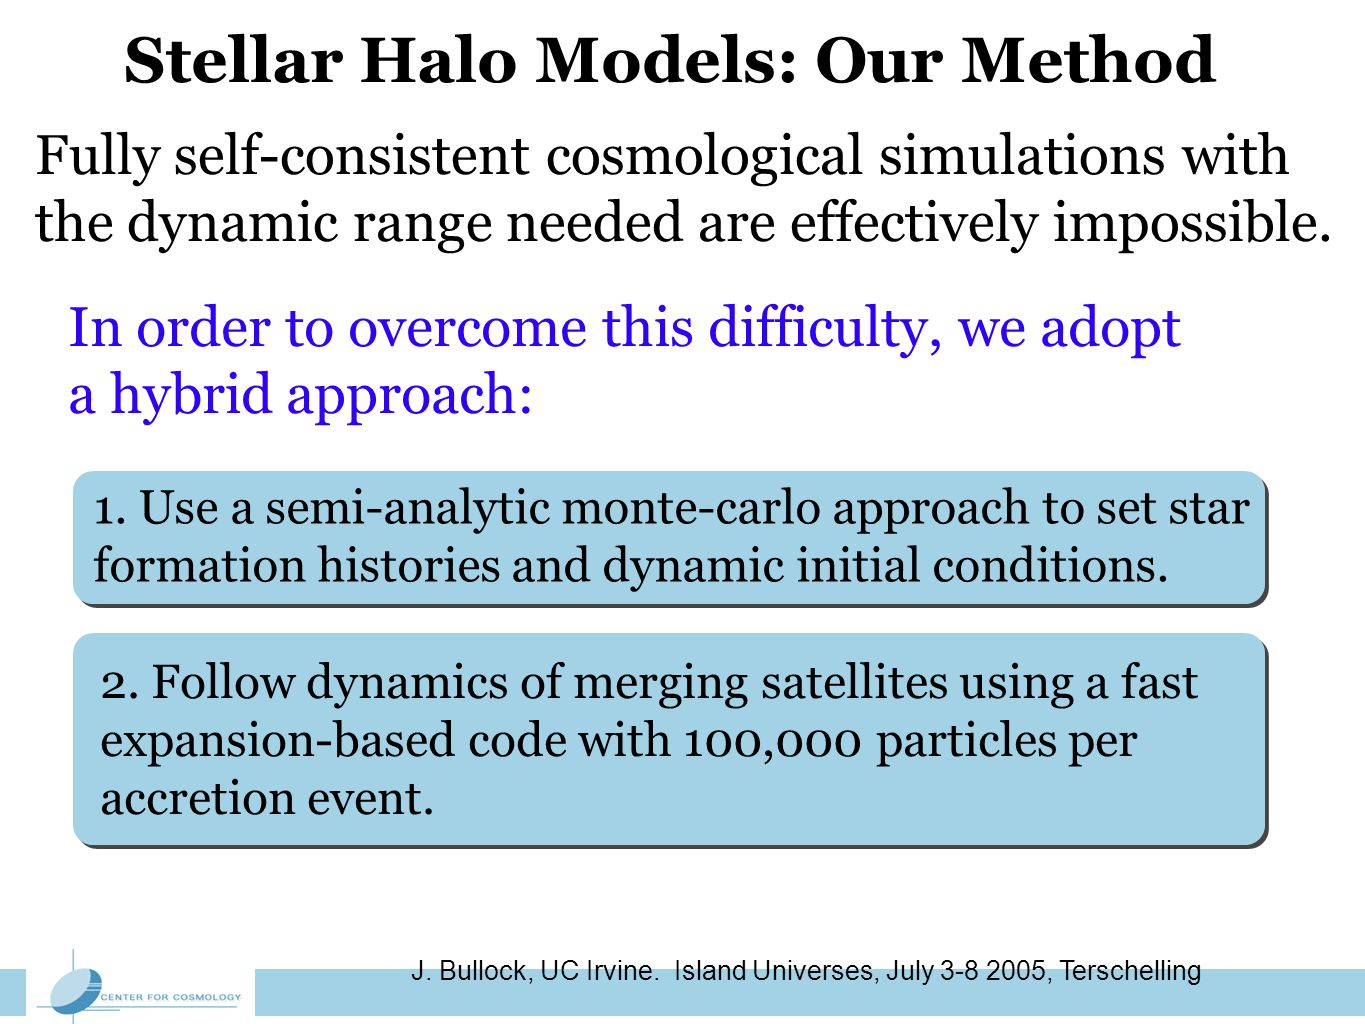 J. Bullock, UC Irvine. Island Universes, July 3-8 2005, Terschelling Stellar Halo Models: Our Method In order to overcome this difficulty, we adopt a